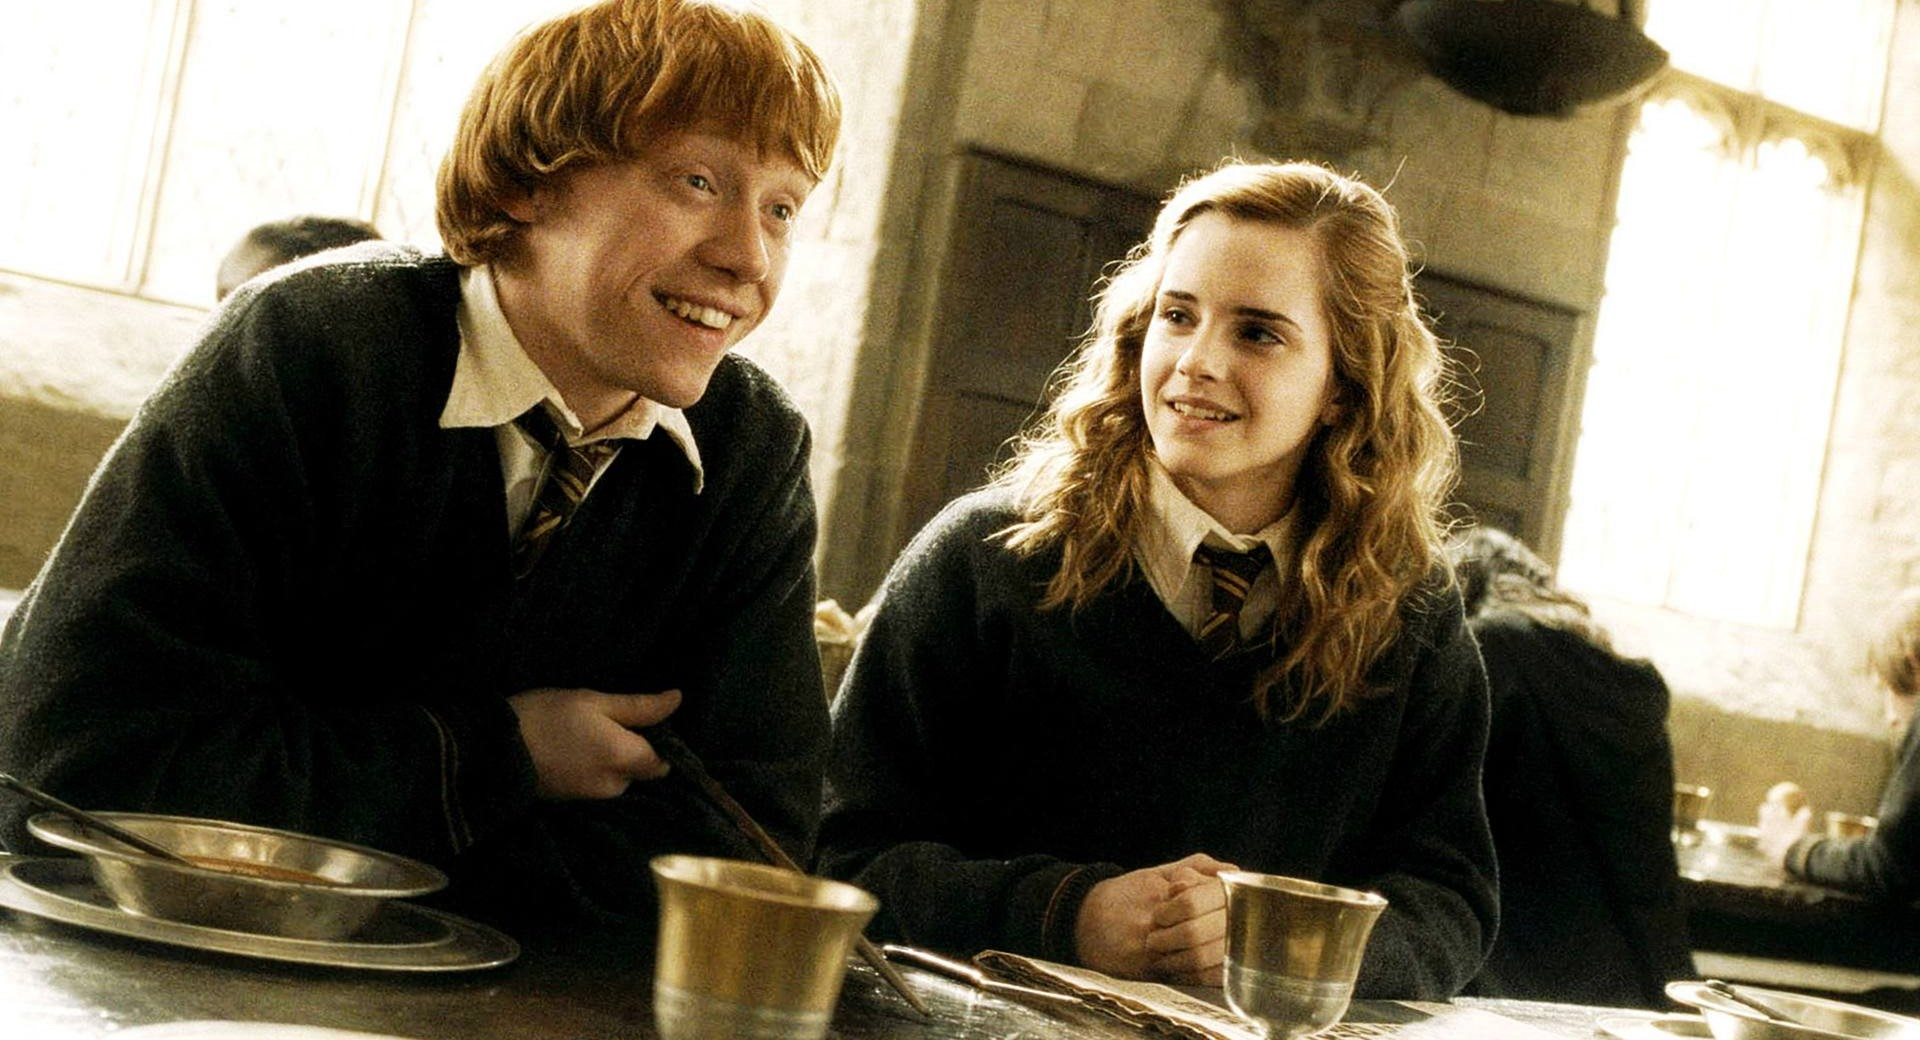 Cast Photos Of Ron And Hermione In New Harry Potter Now Revealed hp 1